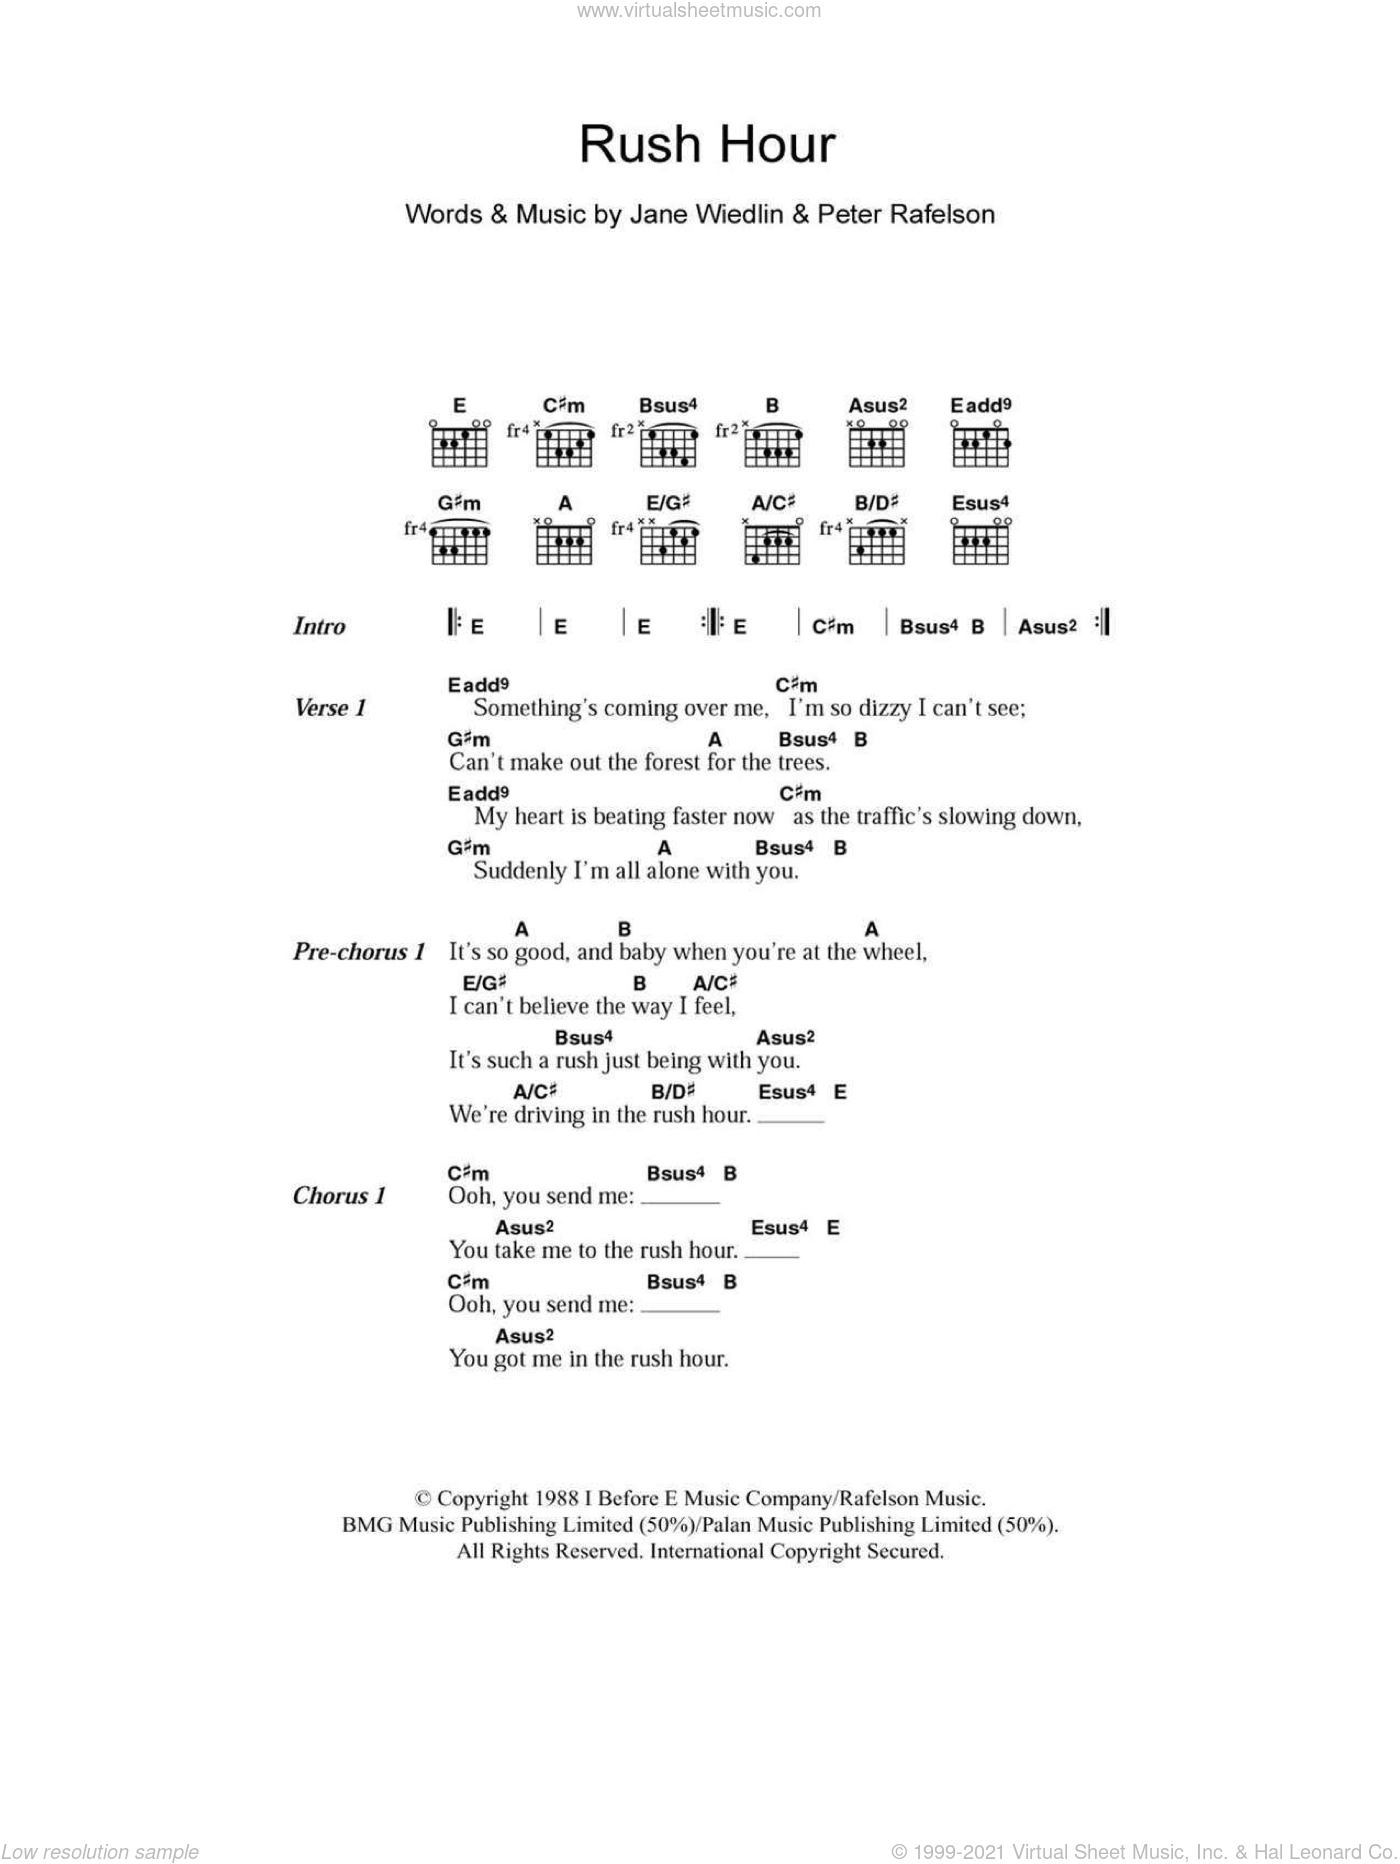 Rush Hour sheet music for guitar (chords) by Peter Rafelson